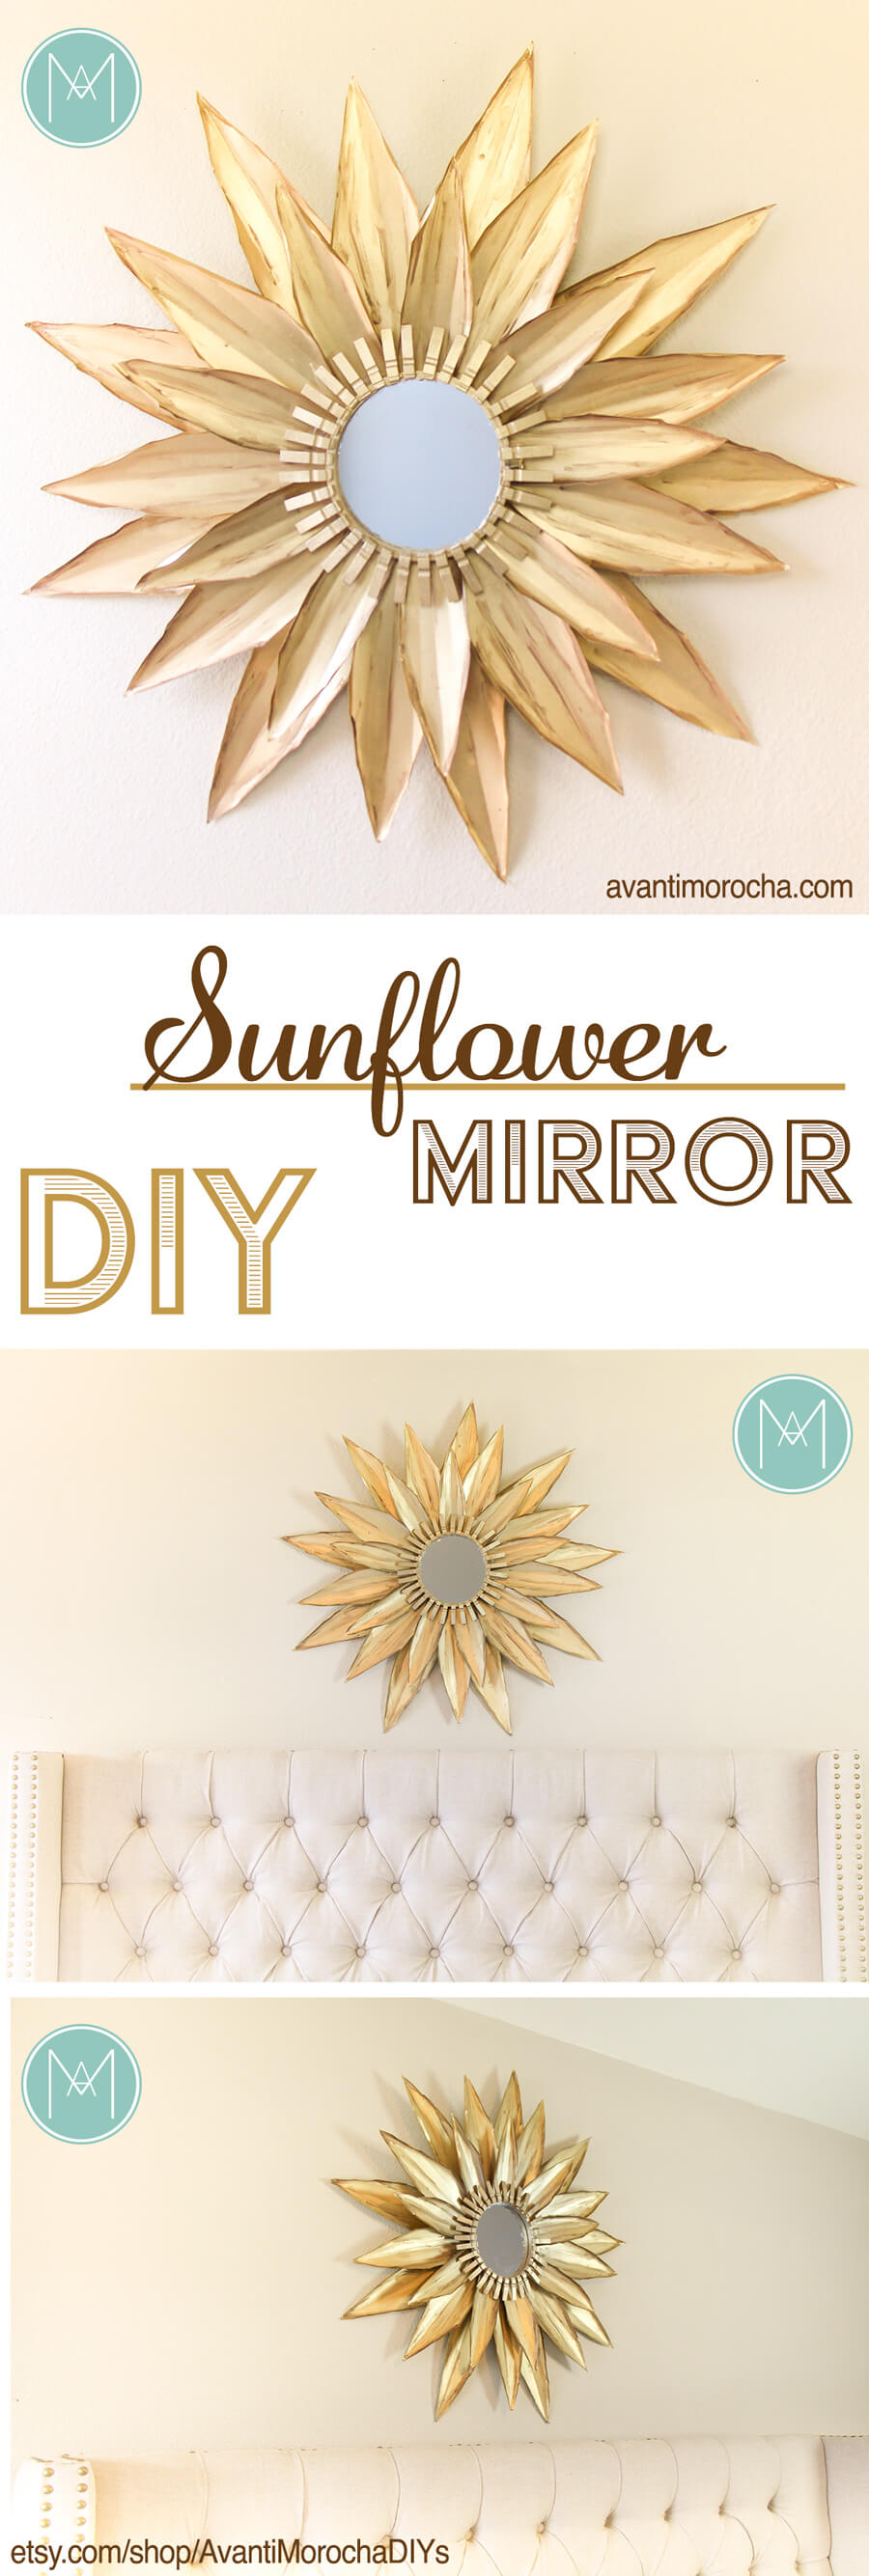 Charming DIY Sunflower Mirror Idea